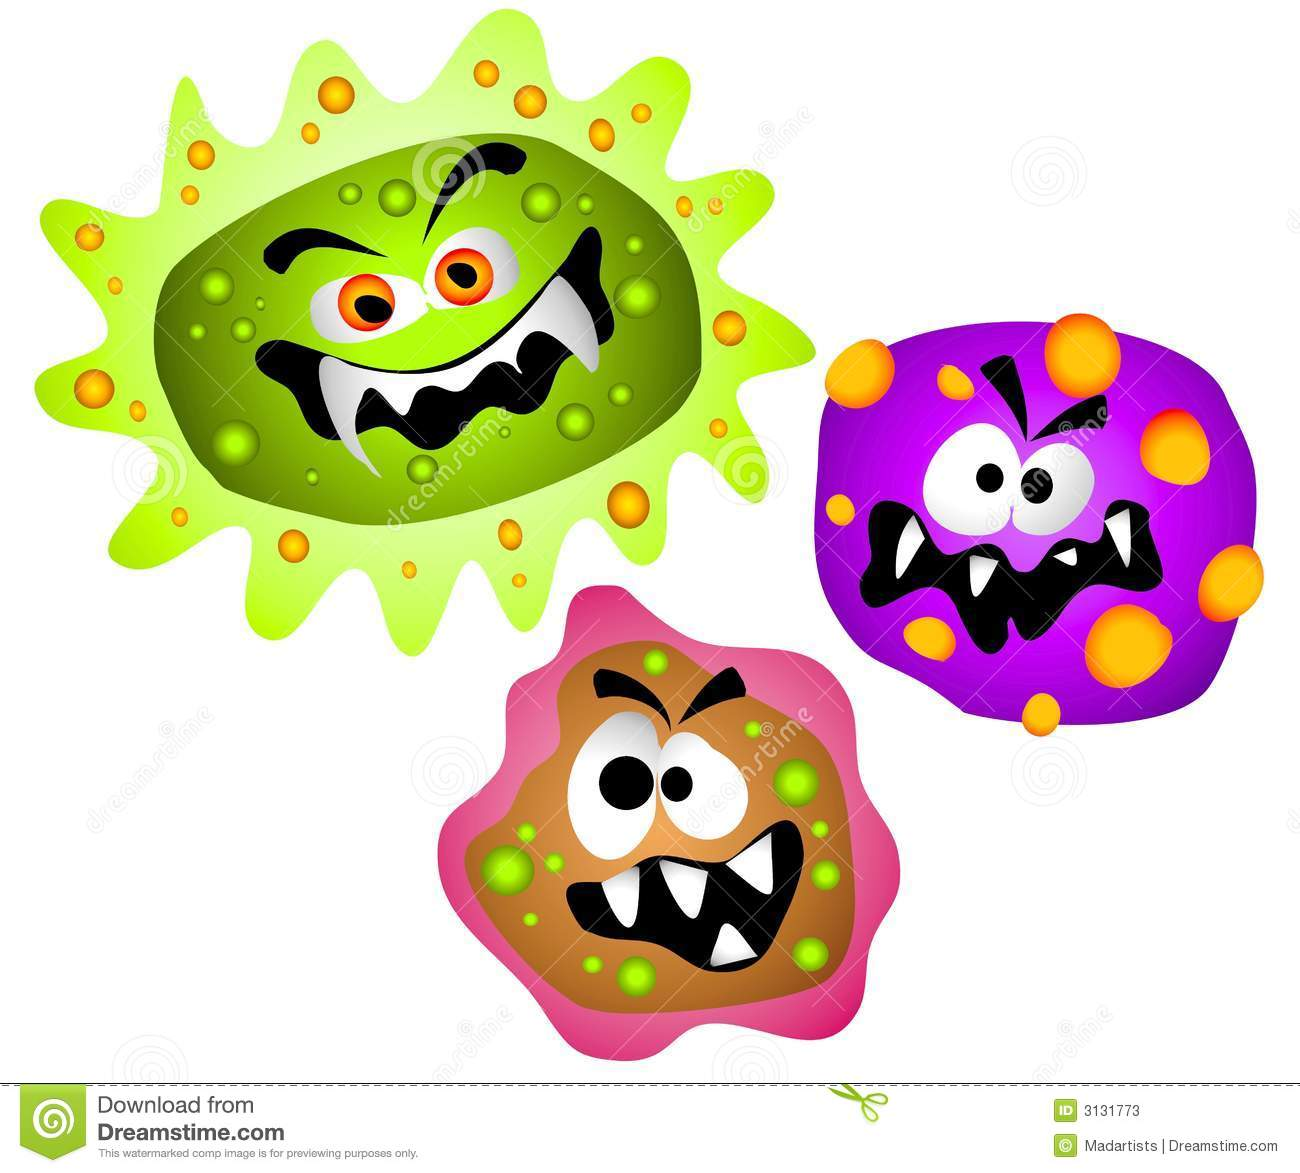 Art cartoon illustration of nasty looking germs viruses or bacteria